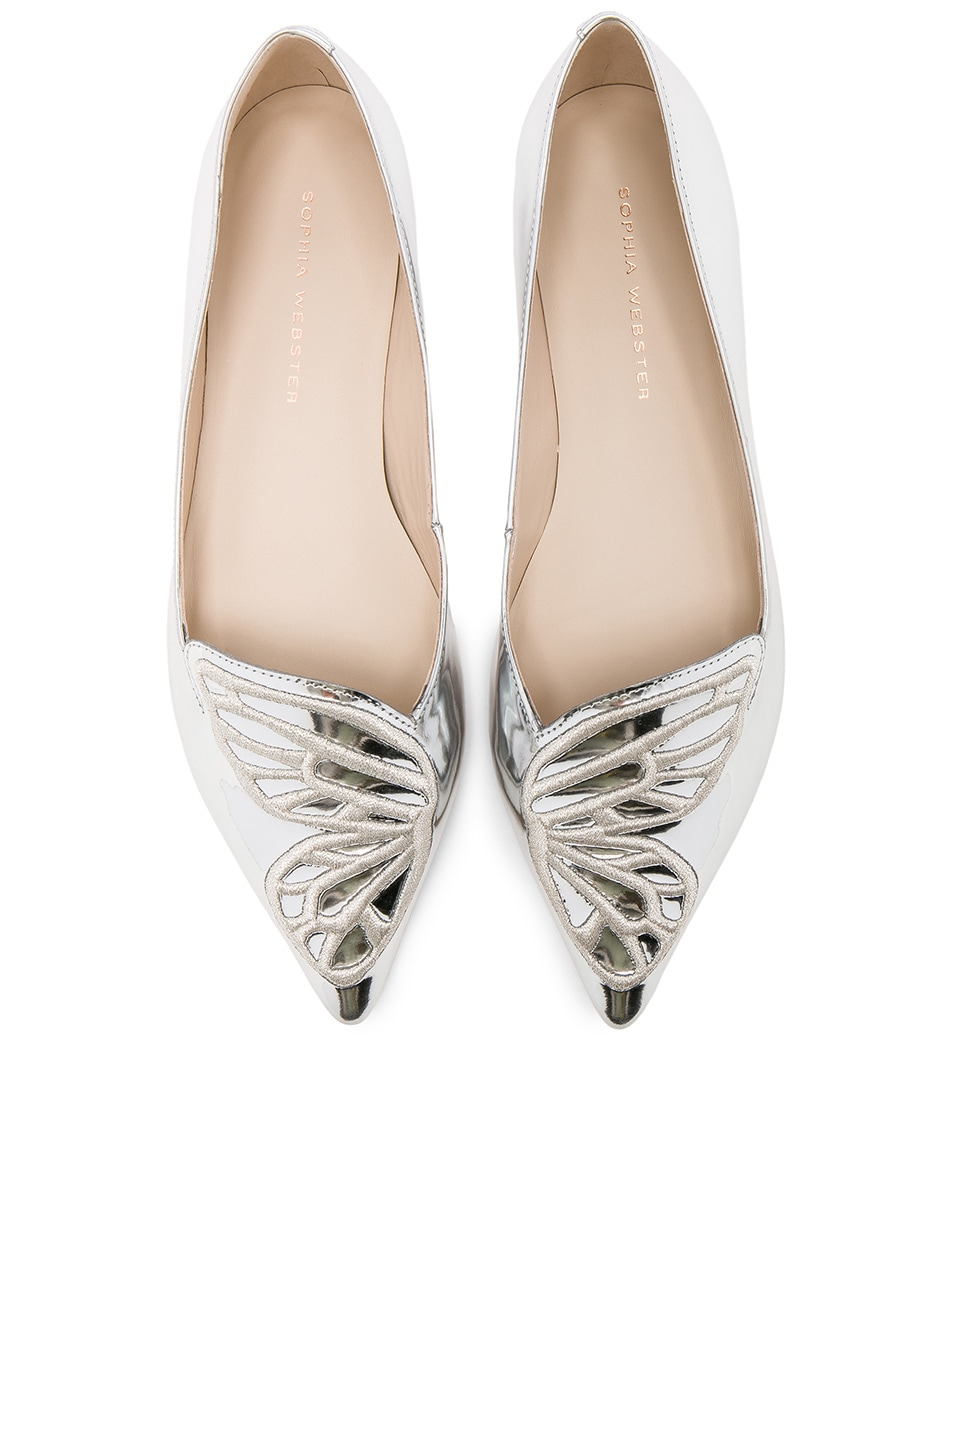 55cfae5f9 Image 1 of Sophia Webster Leather Bibi Butterfly Flats in Silver Metallic